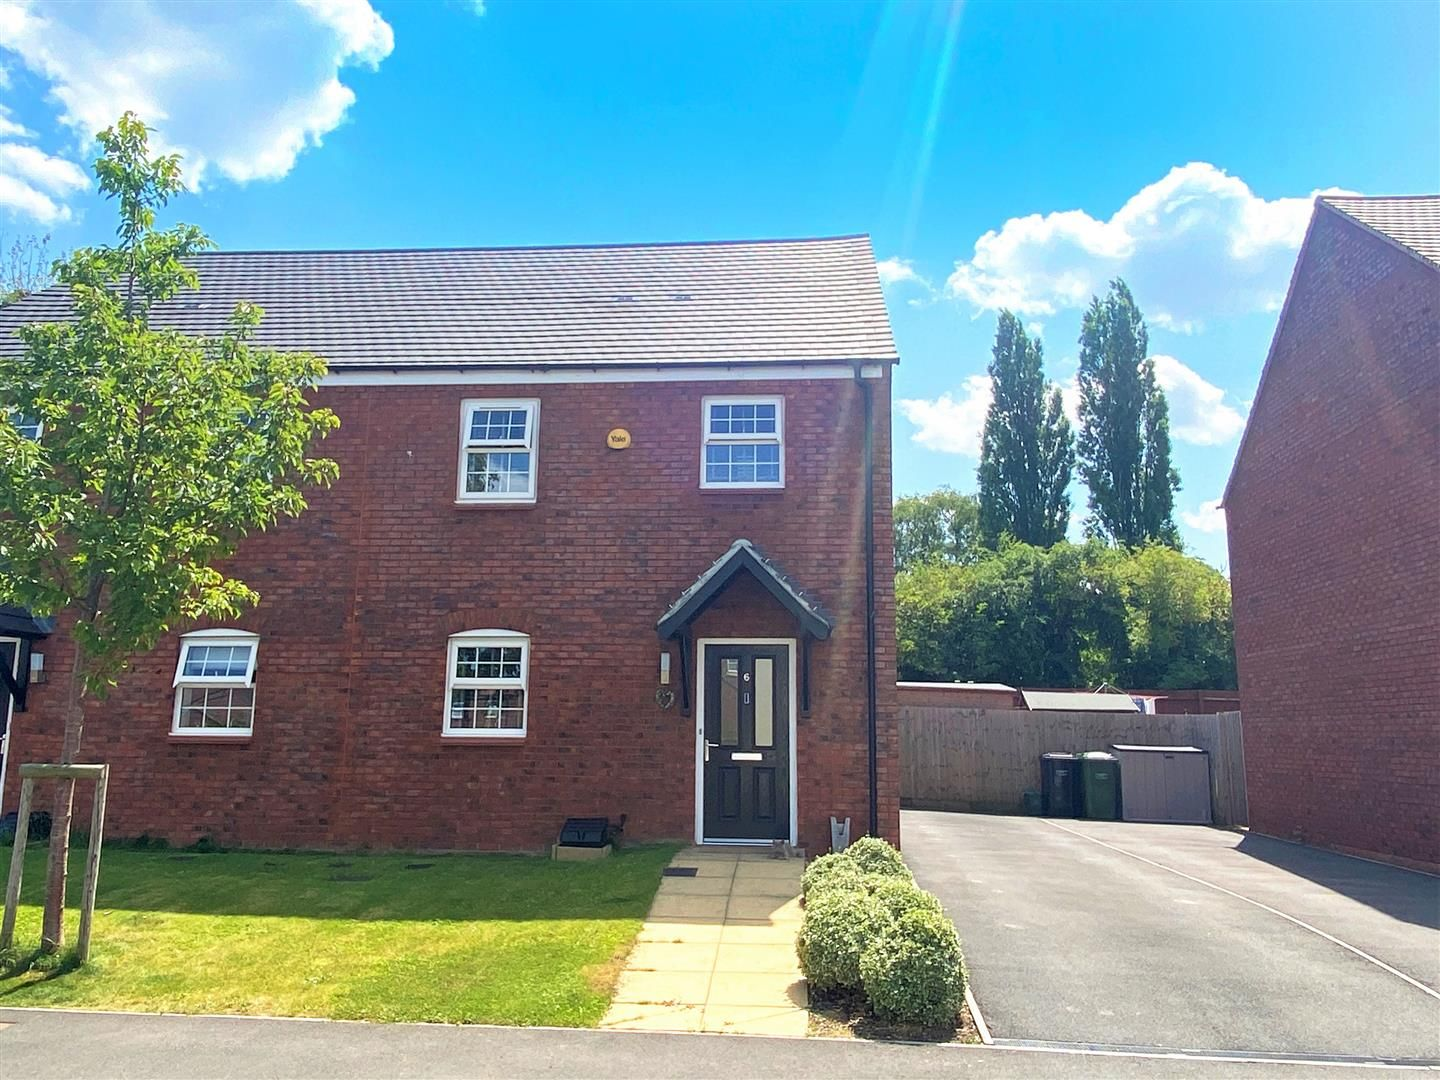 3 bed semi-detached for sale in Holmer, HR1